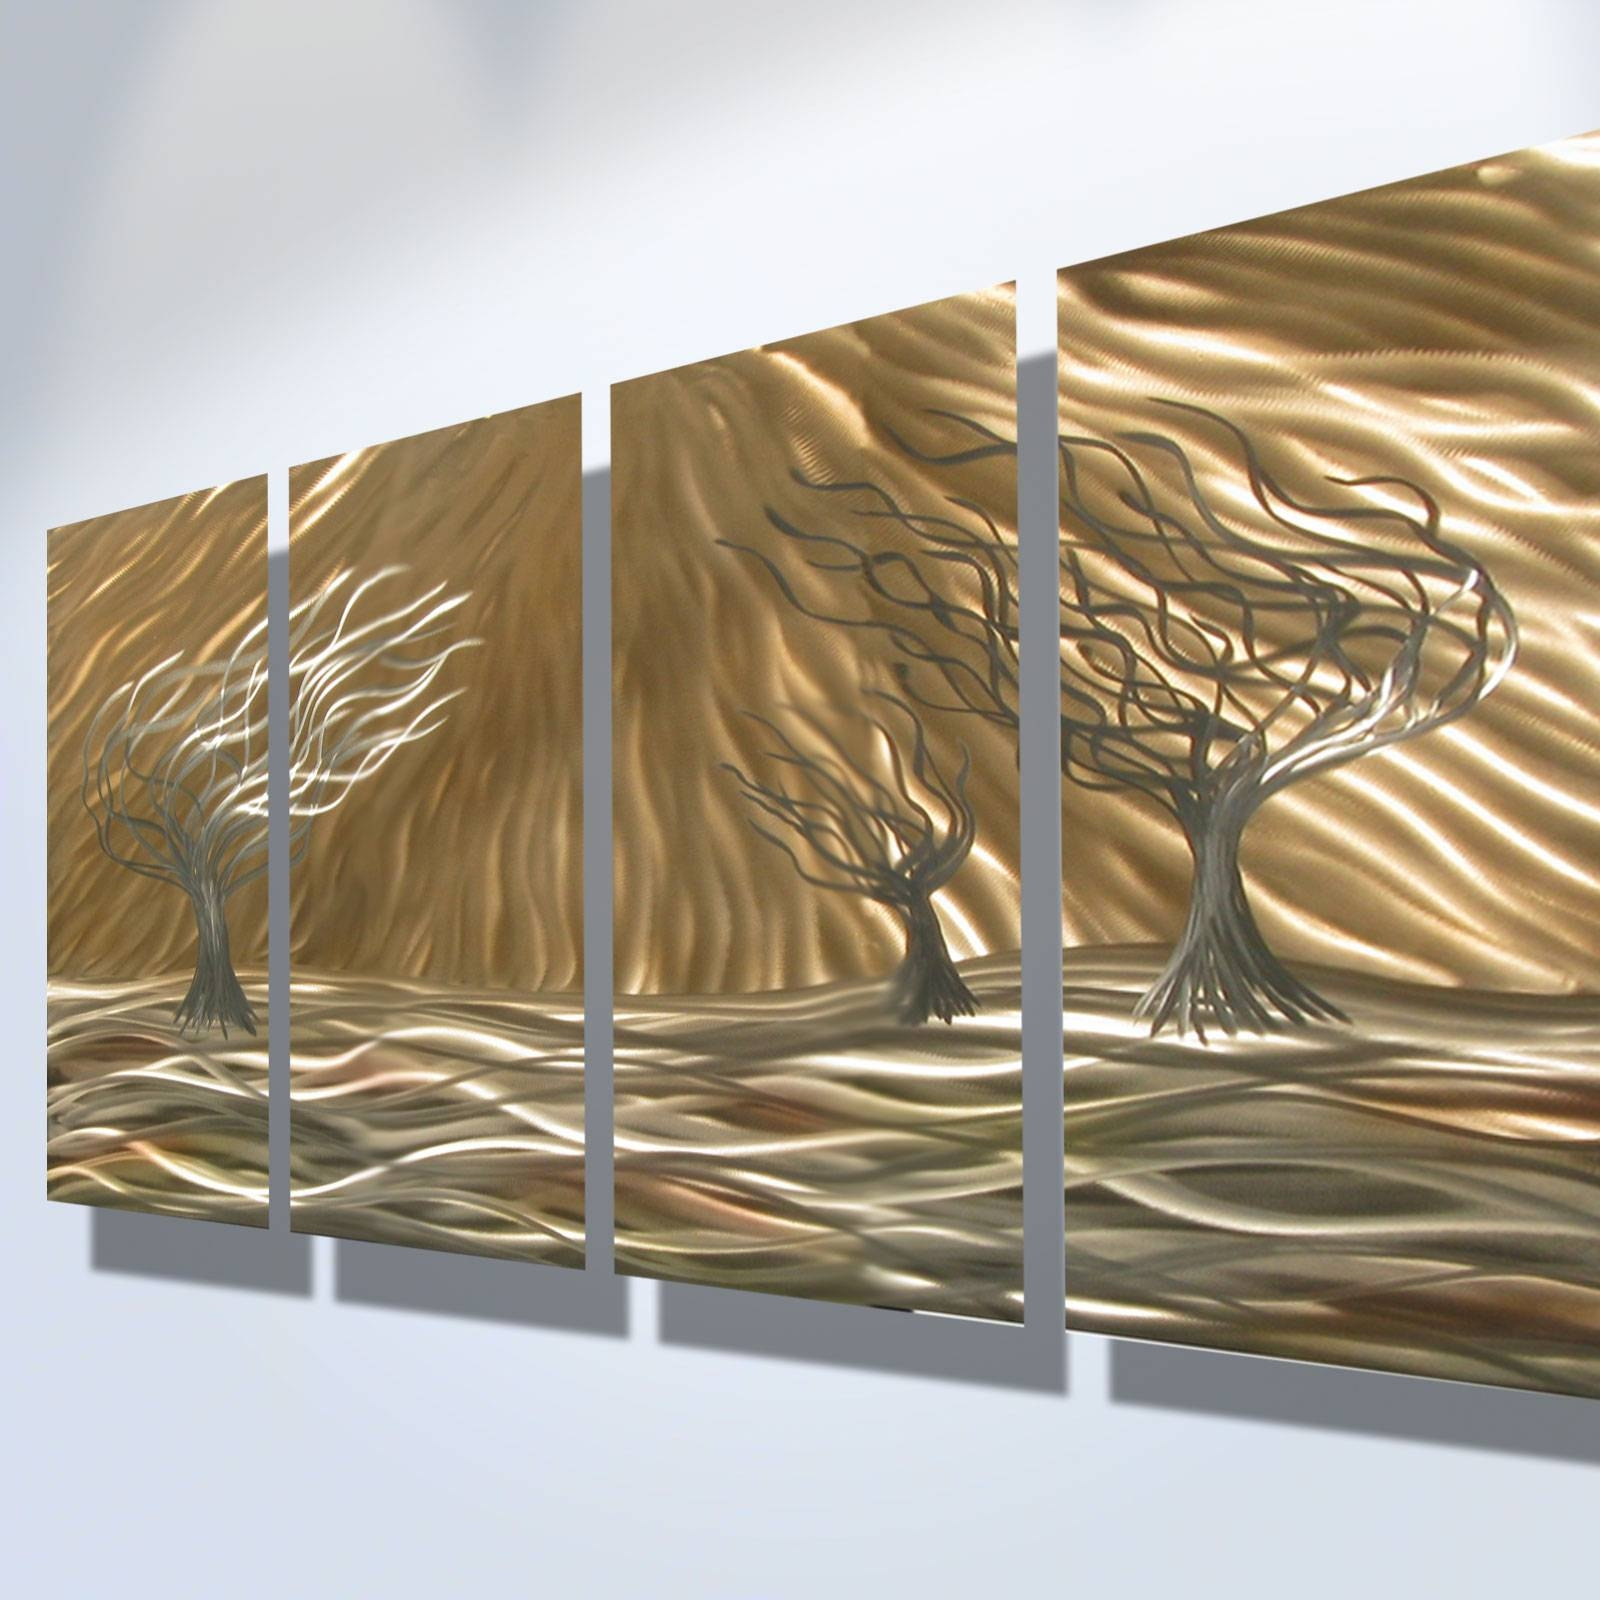 Outstanding Wall Design Typhoon Tropical Wall Art Tropical Bamboo With Regard To Latest Bamboo Metal Wall Art (View 24 of 25)